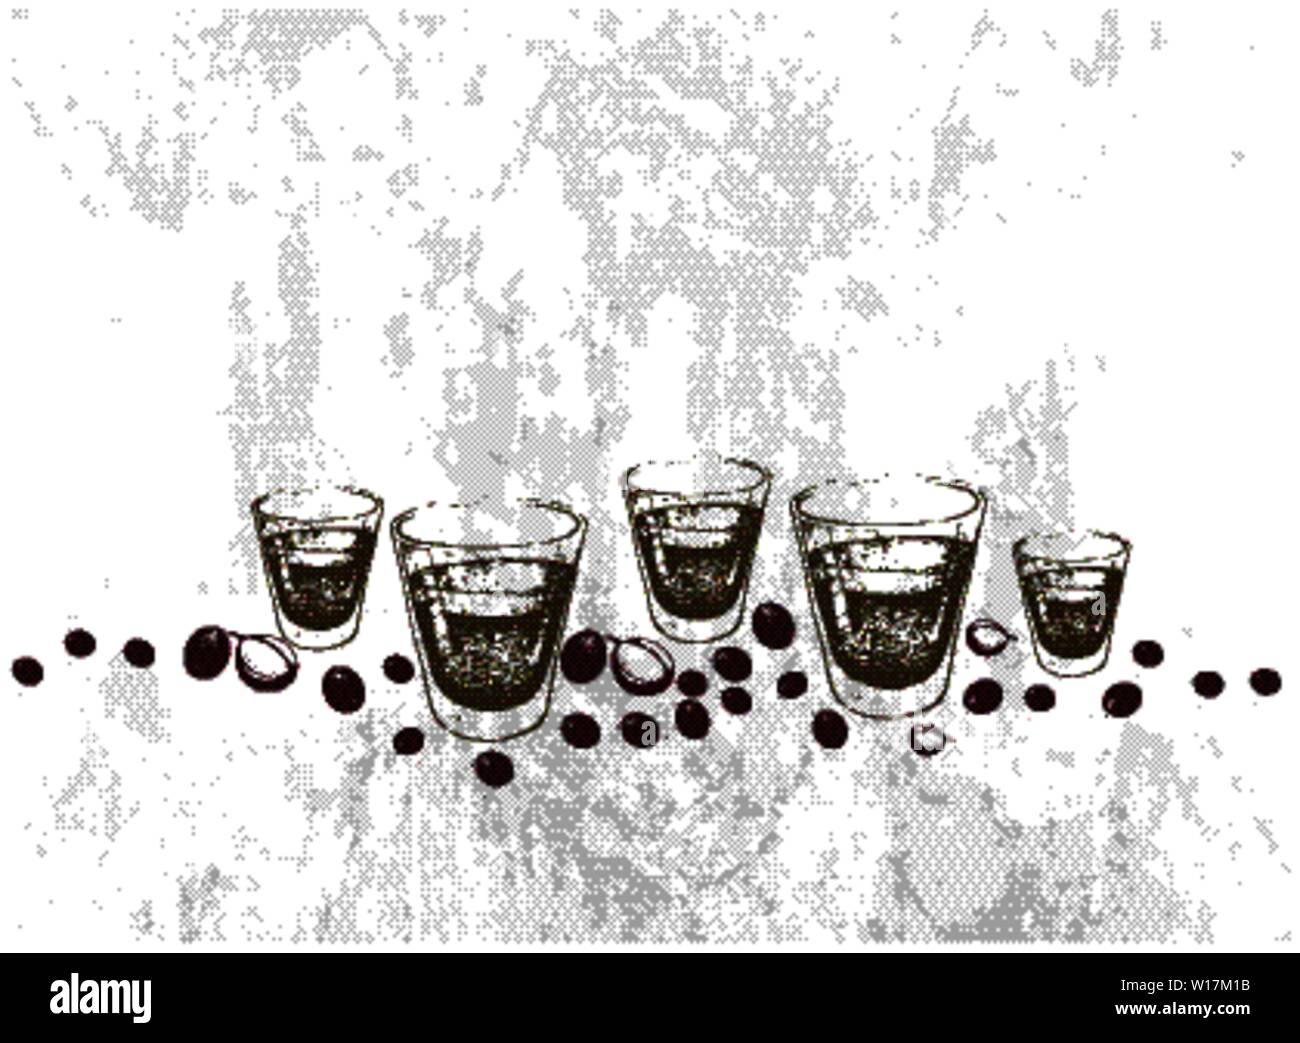 Illustration Hand Drawn Sketch of Classic Style Espresso in Shot Glasses with Roasted Coffee Beans. Stock Vector